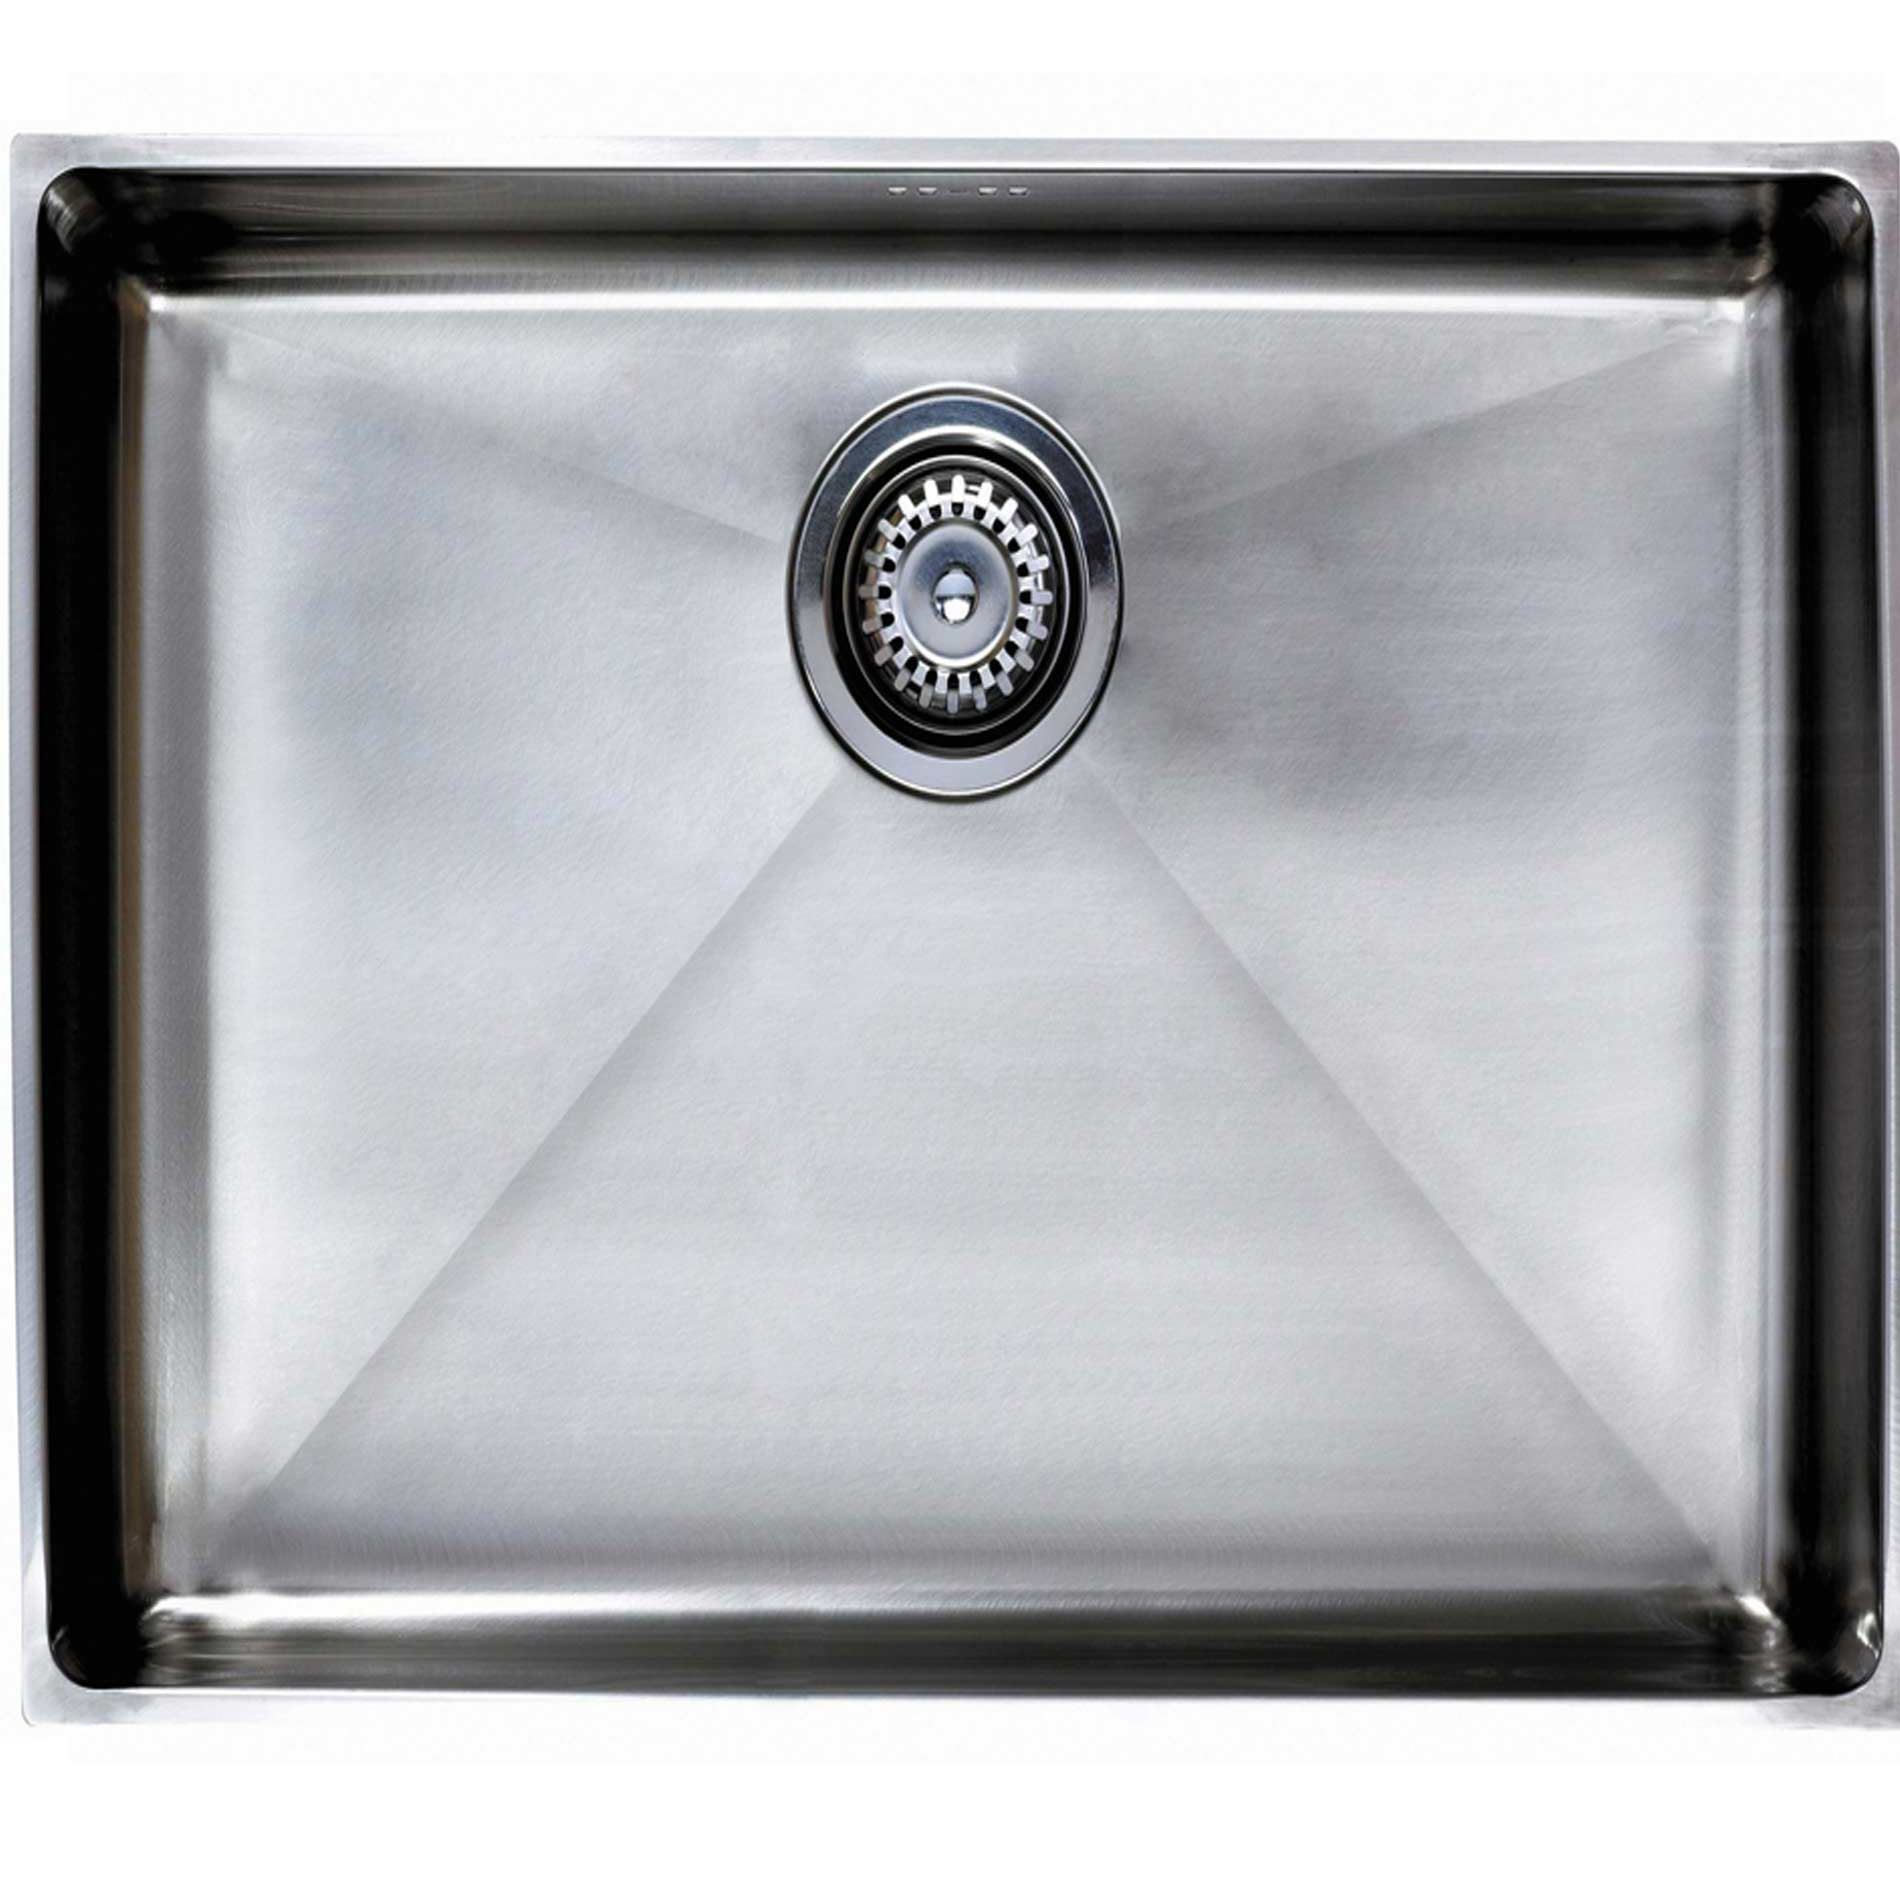 ... Onyx Extra Large Bowl 4070 Stainless Steel Sink - Kitchen Sinks & Taps